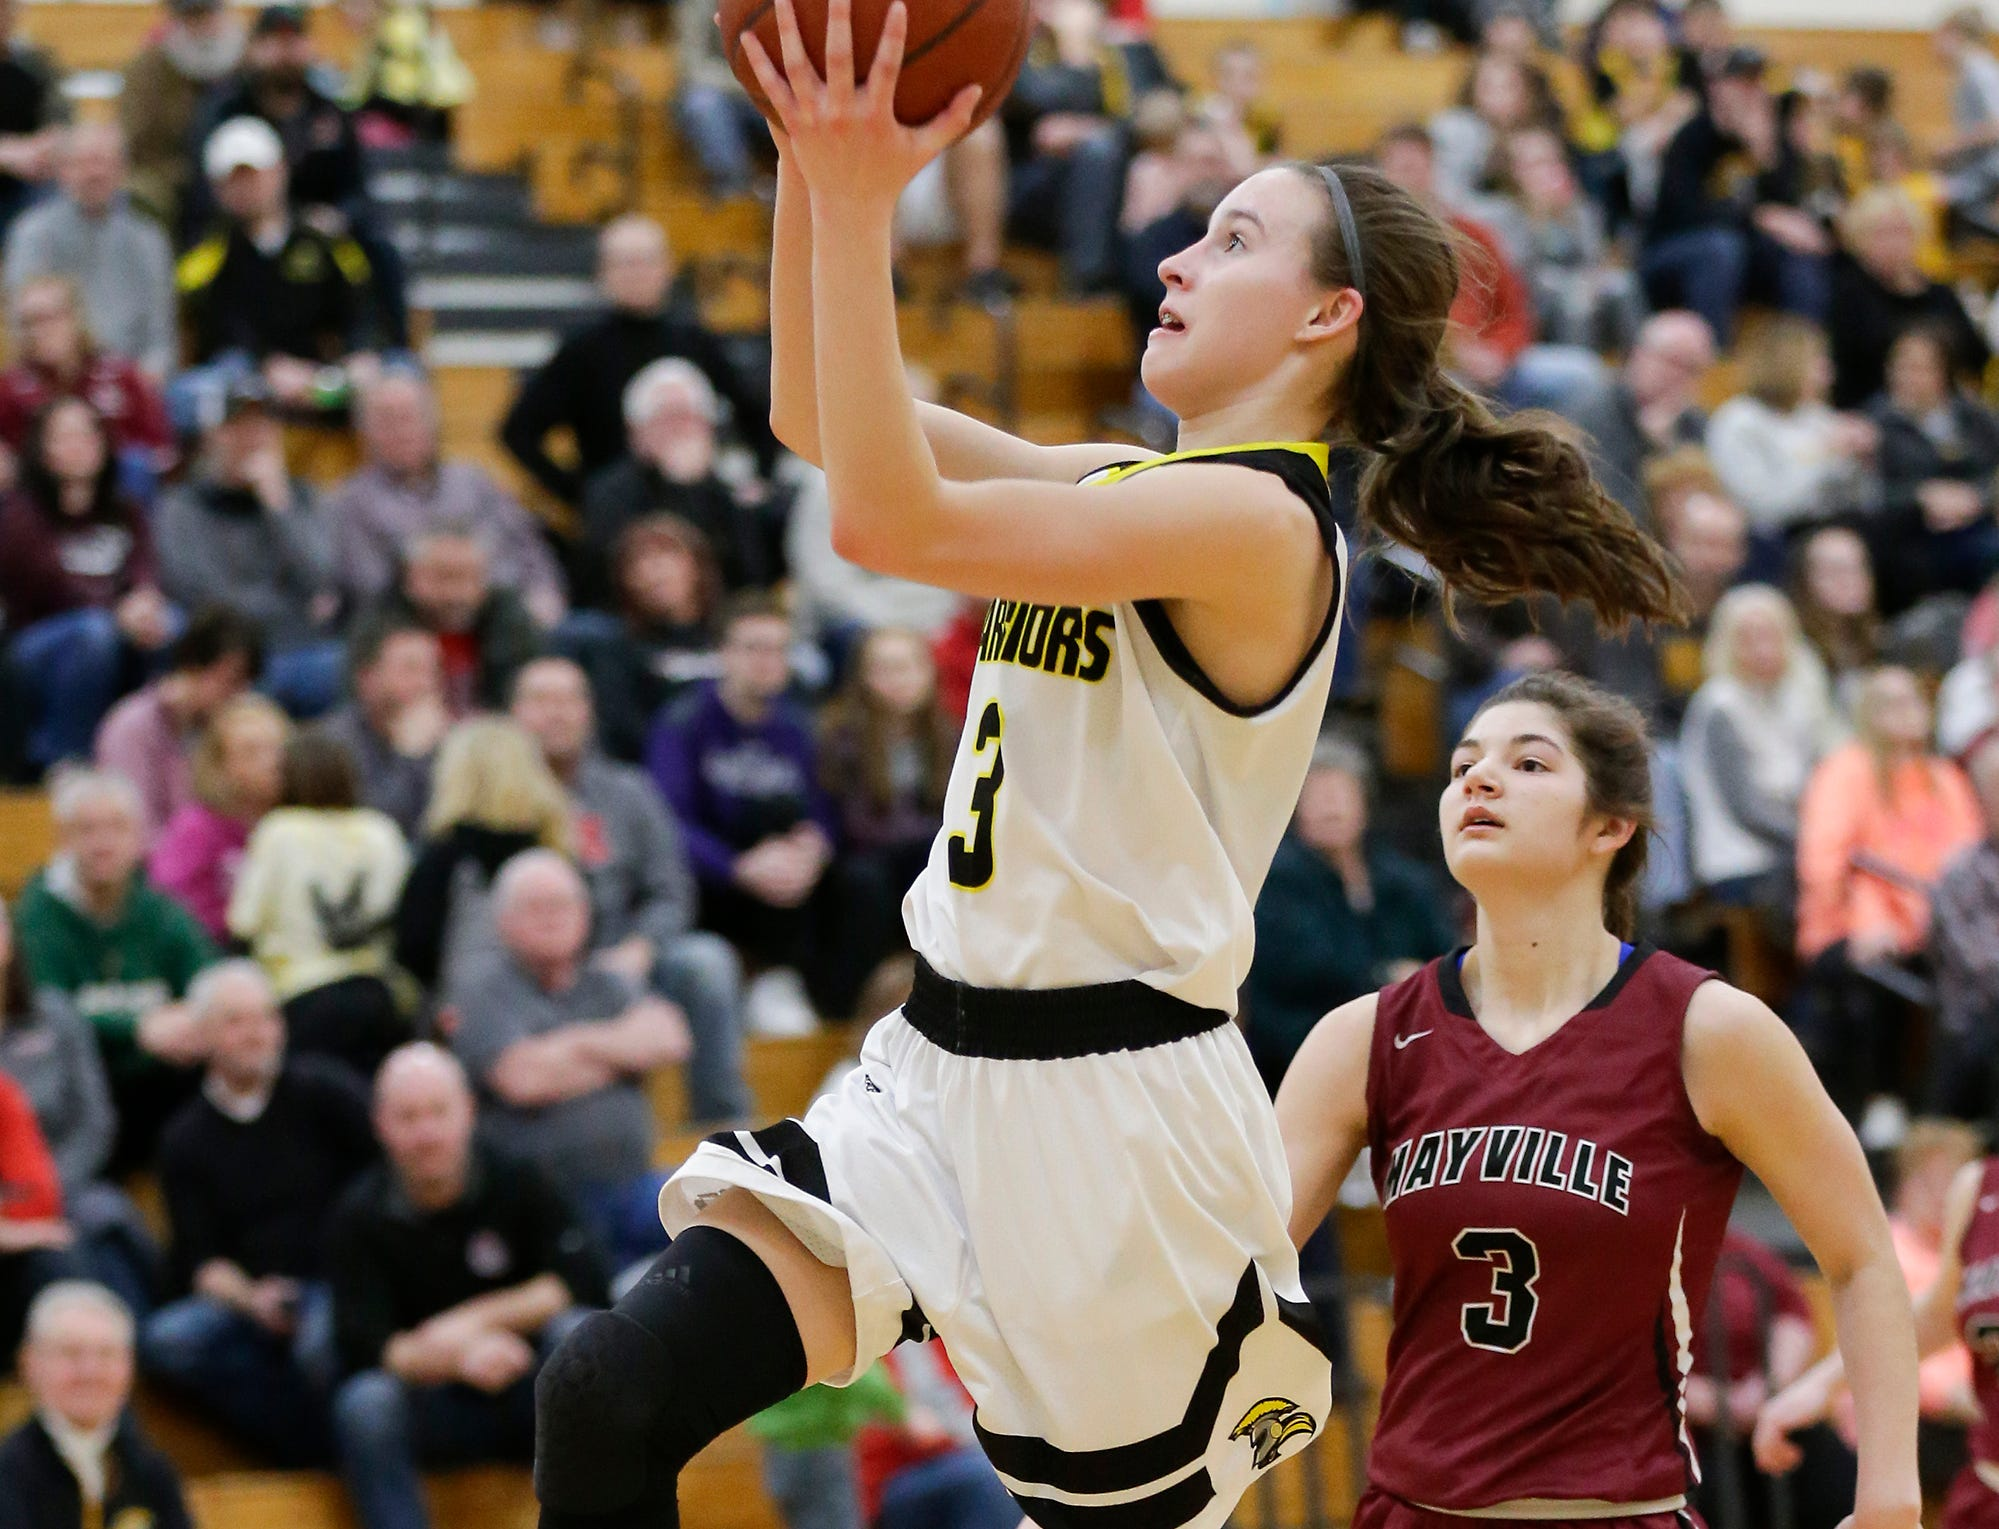 Waupun High School girls basketball's Abbie Aalsma goes up for a basket against Mayville High School Saturday, February 23, 2019 during their WIAA Division 4 sectional quarterfinal game in Waupun. Waupun won the game 62-45. Doug Raflik/USA TODAY NETWORK-Wisconsin